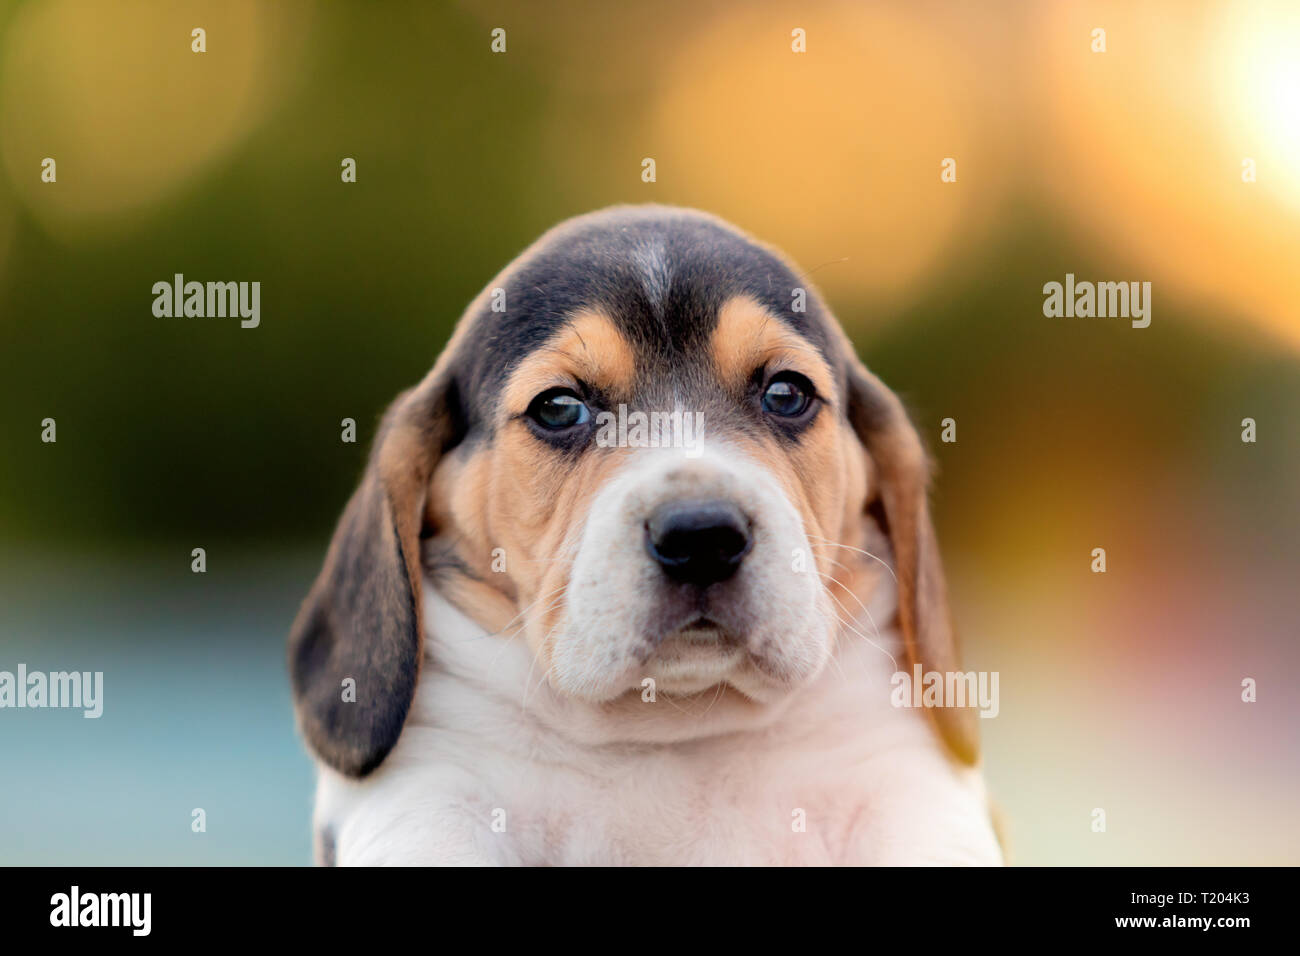 Beautiful Beagle Puppy Brown And Black In The Garden Stock Photo Alamy